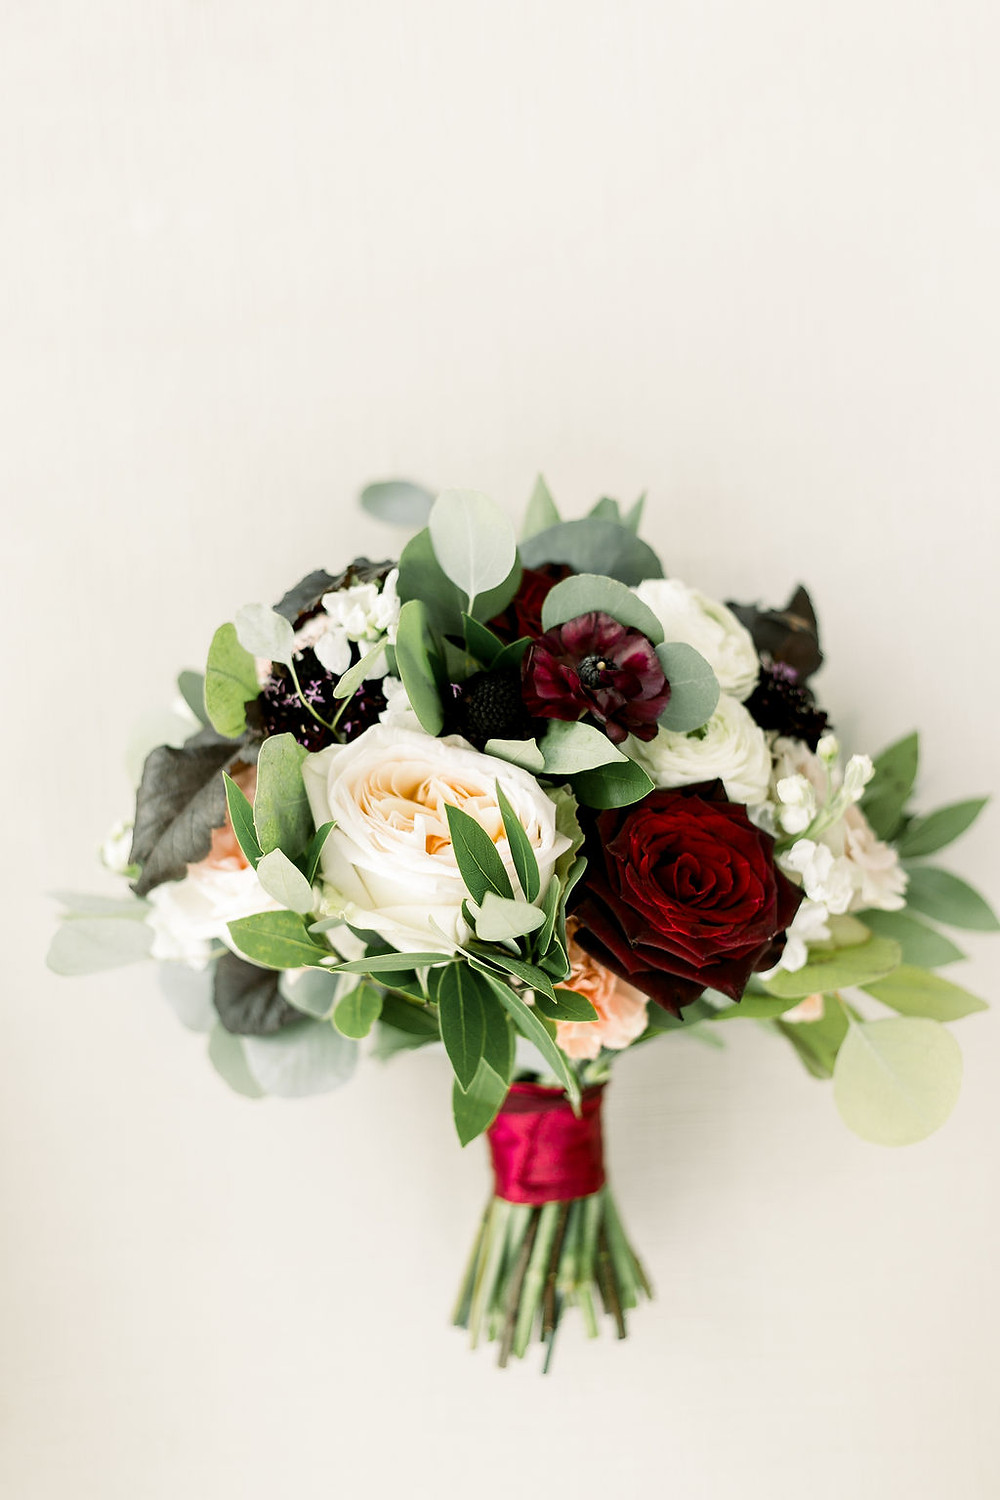 Classic bridal bouquet in burgundy and blush by Studio Bloom Iowa of garden roses, ranunculus, carnations, and eucalyptus